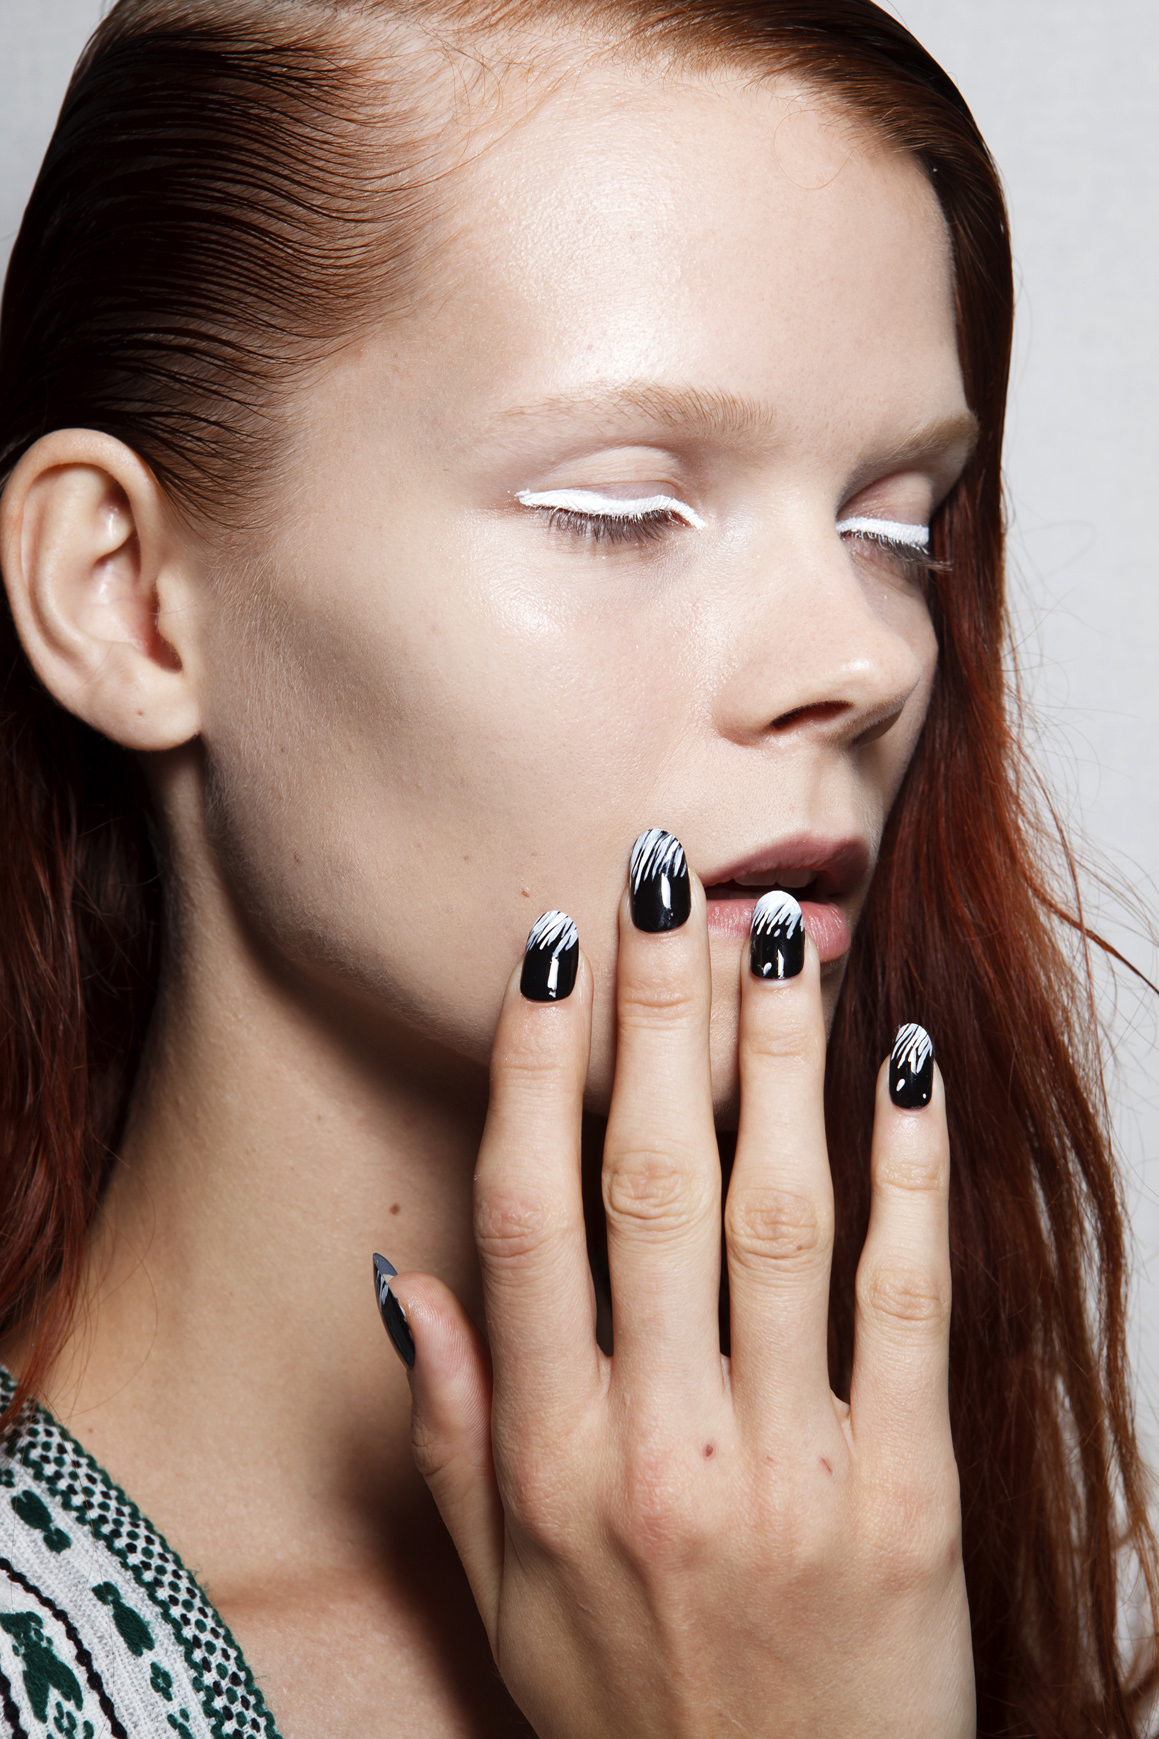 Girl with black and white nail art